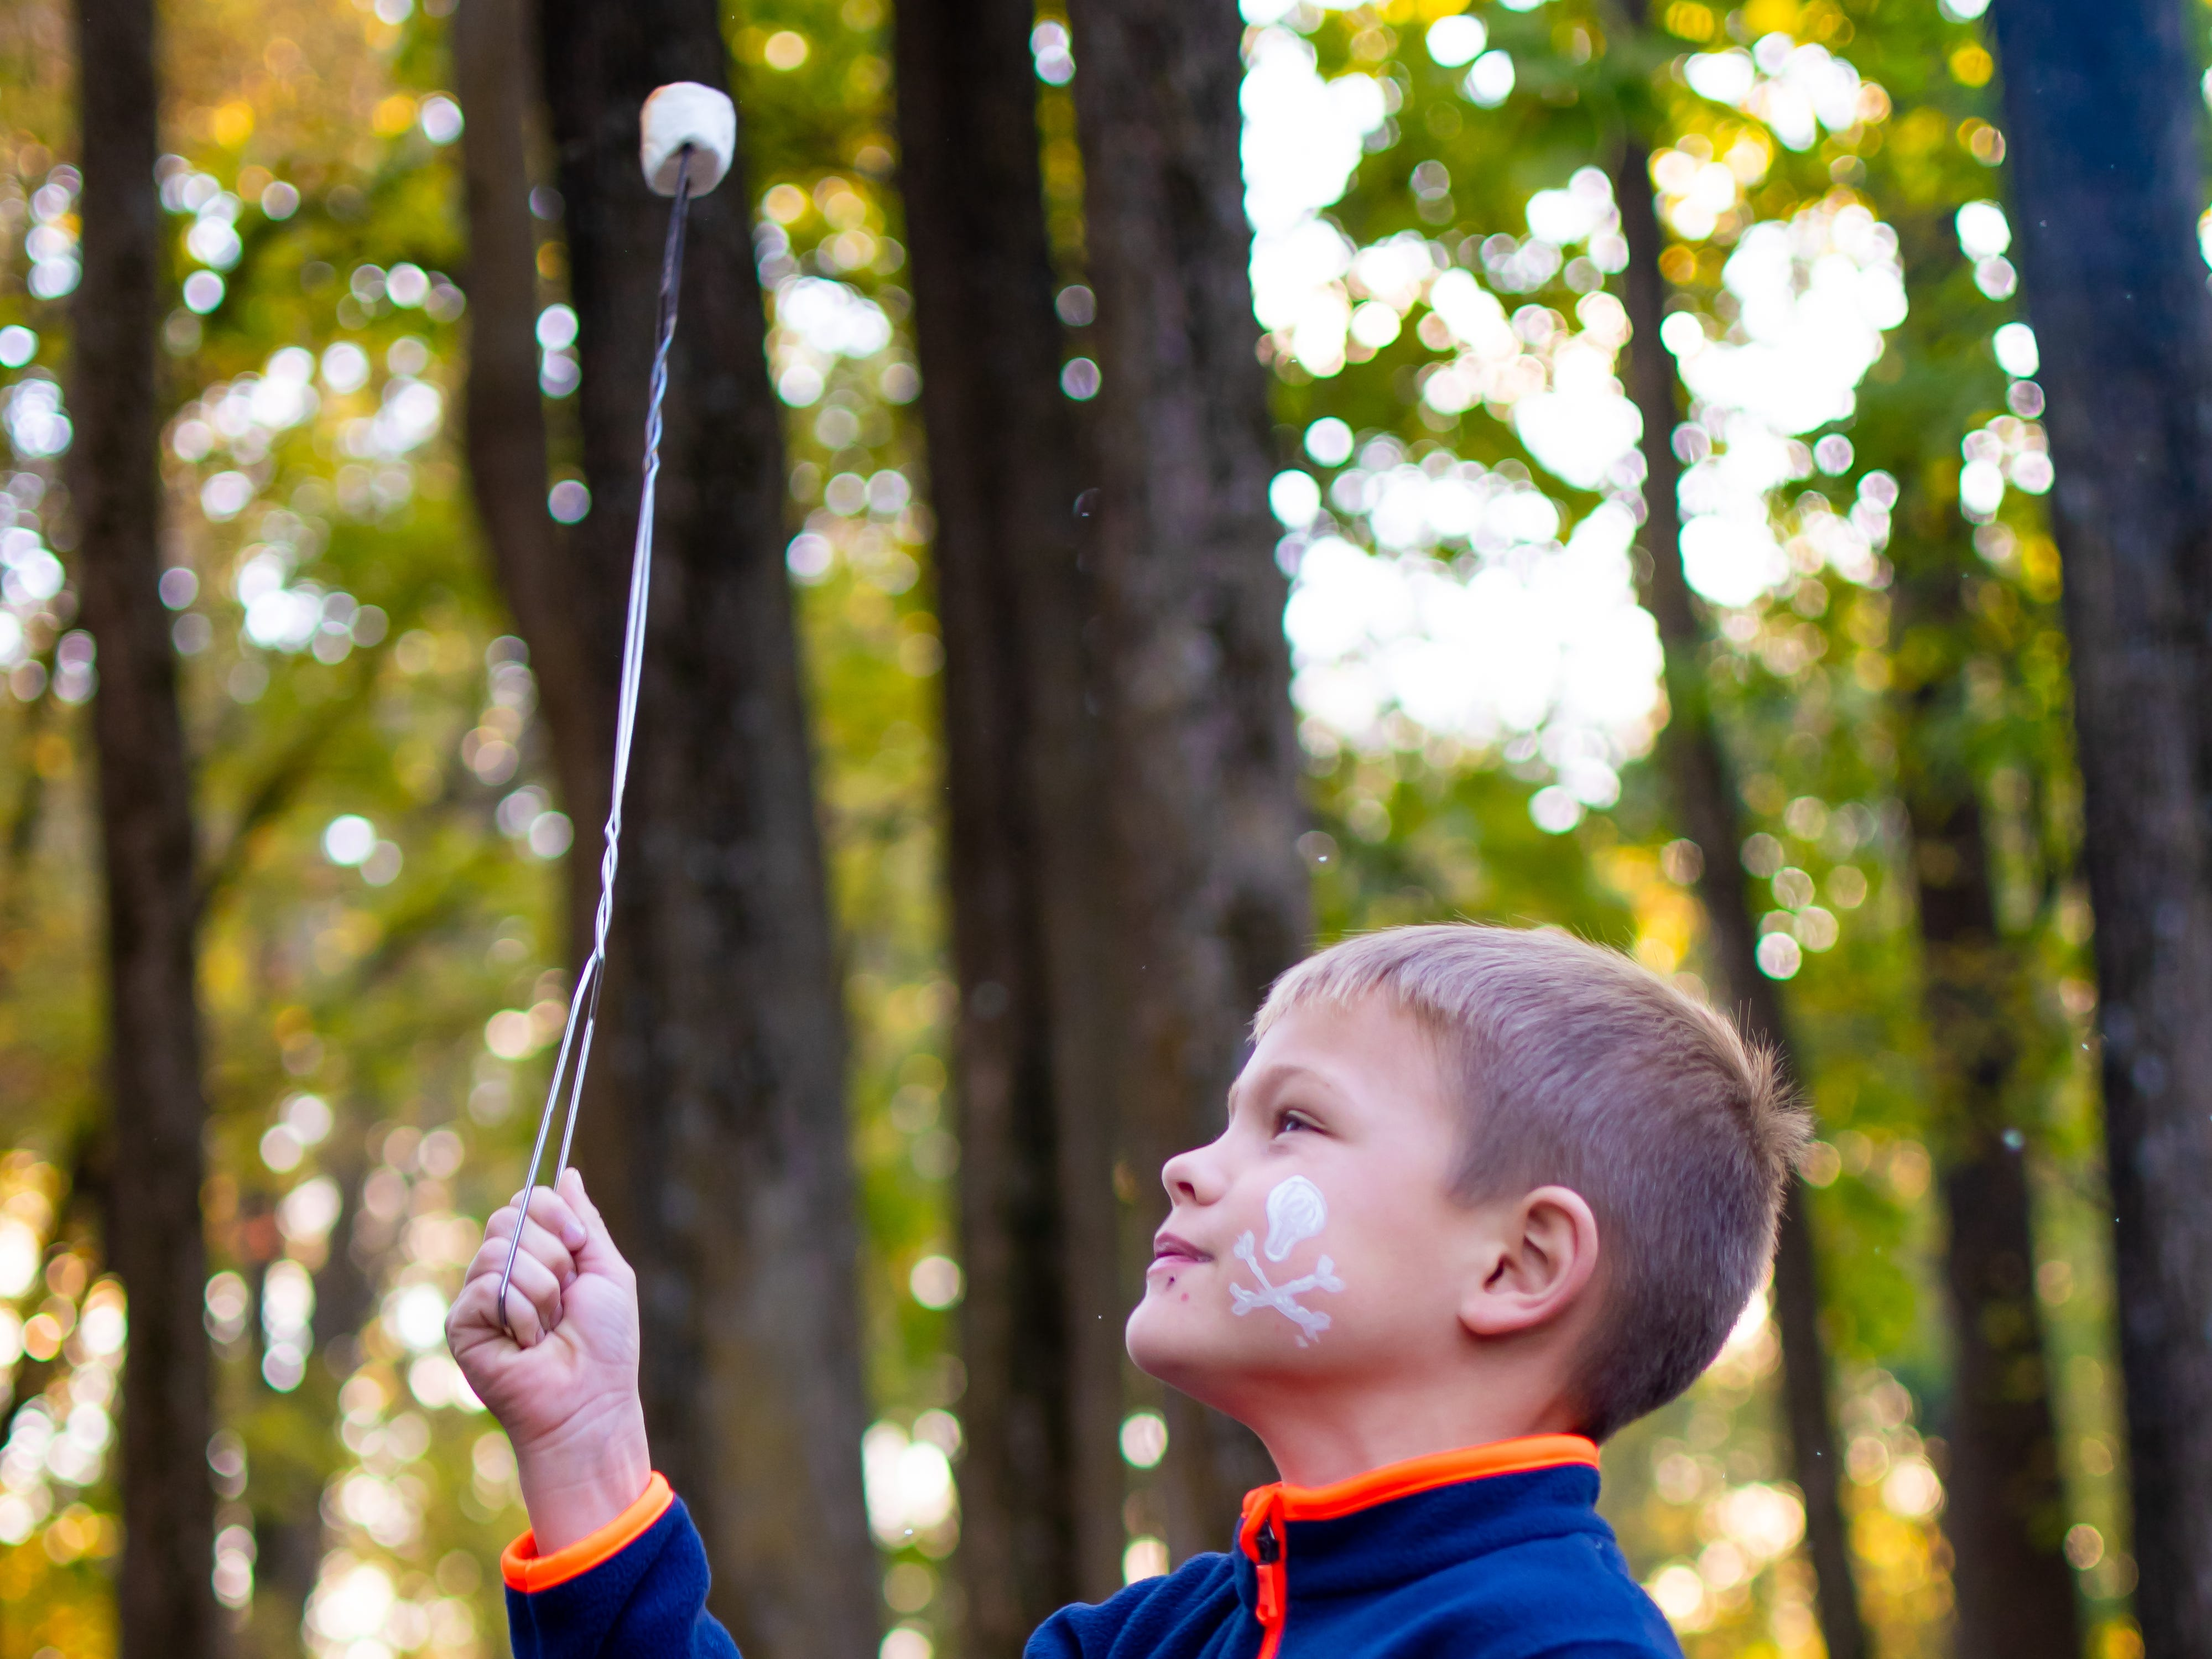 Jimmy Scott, 6, of Waukee inspects his marshmallow on Tuesday, Oct. 16, 2018 for the Waukee Area Chamber of Commerce fall after hours party at Timberline Campground in Waukee.